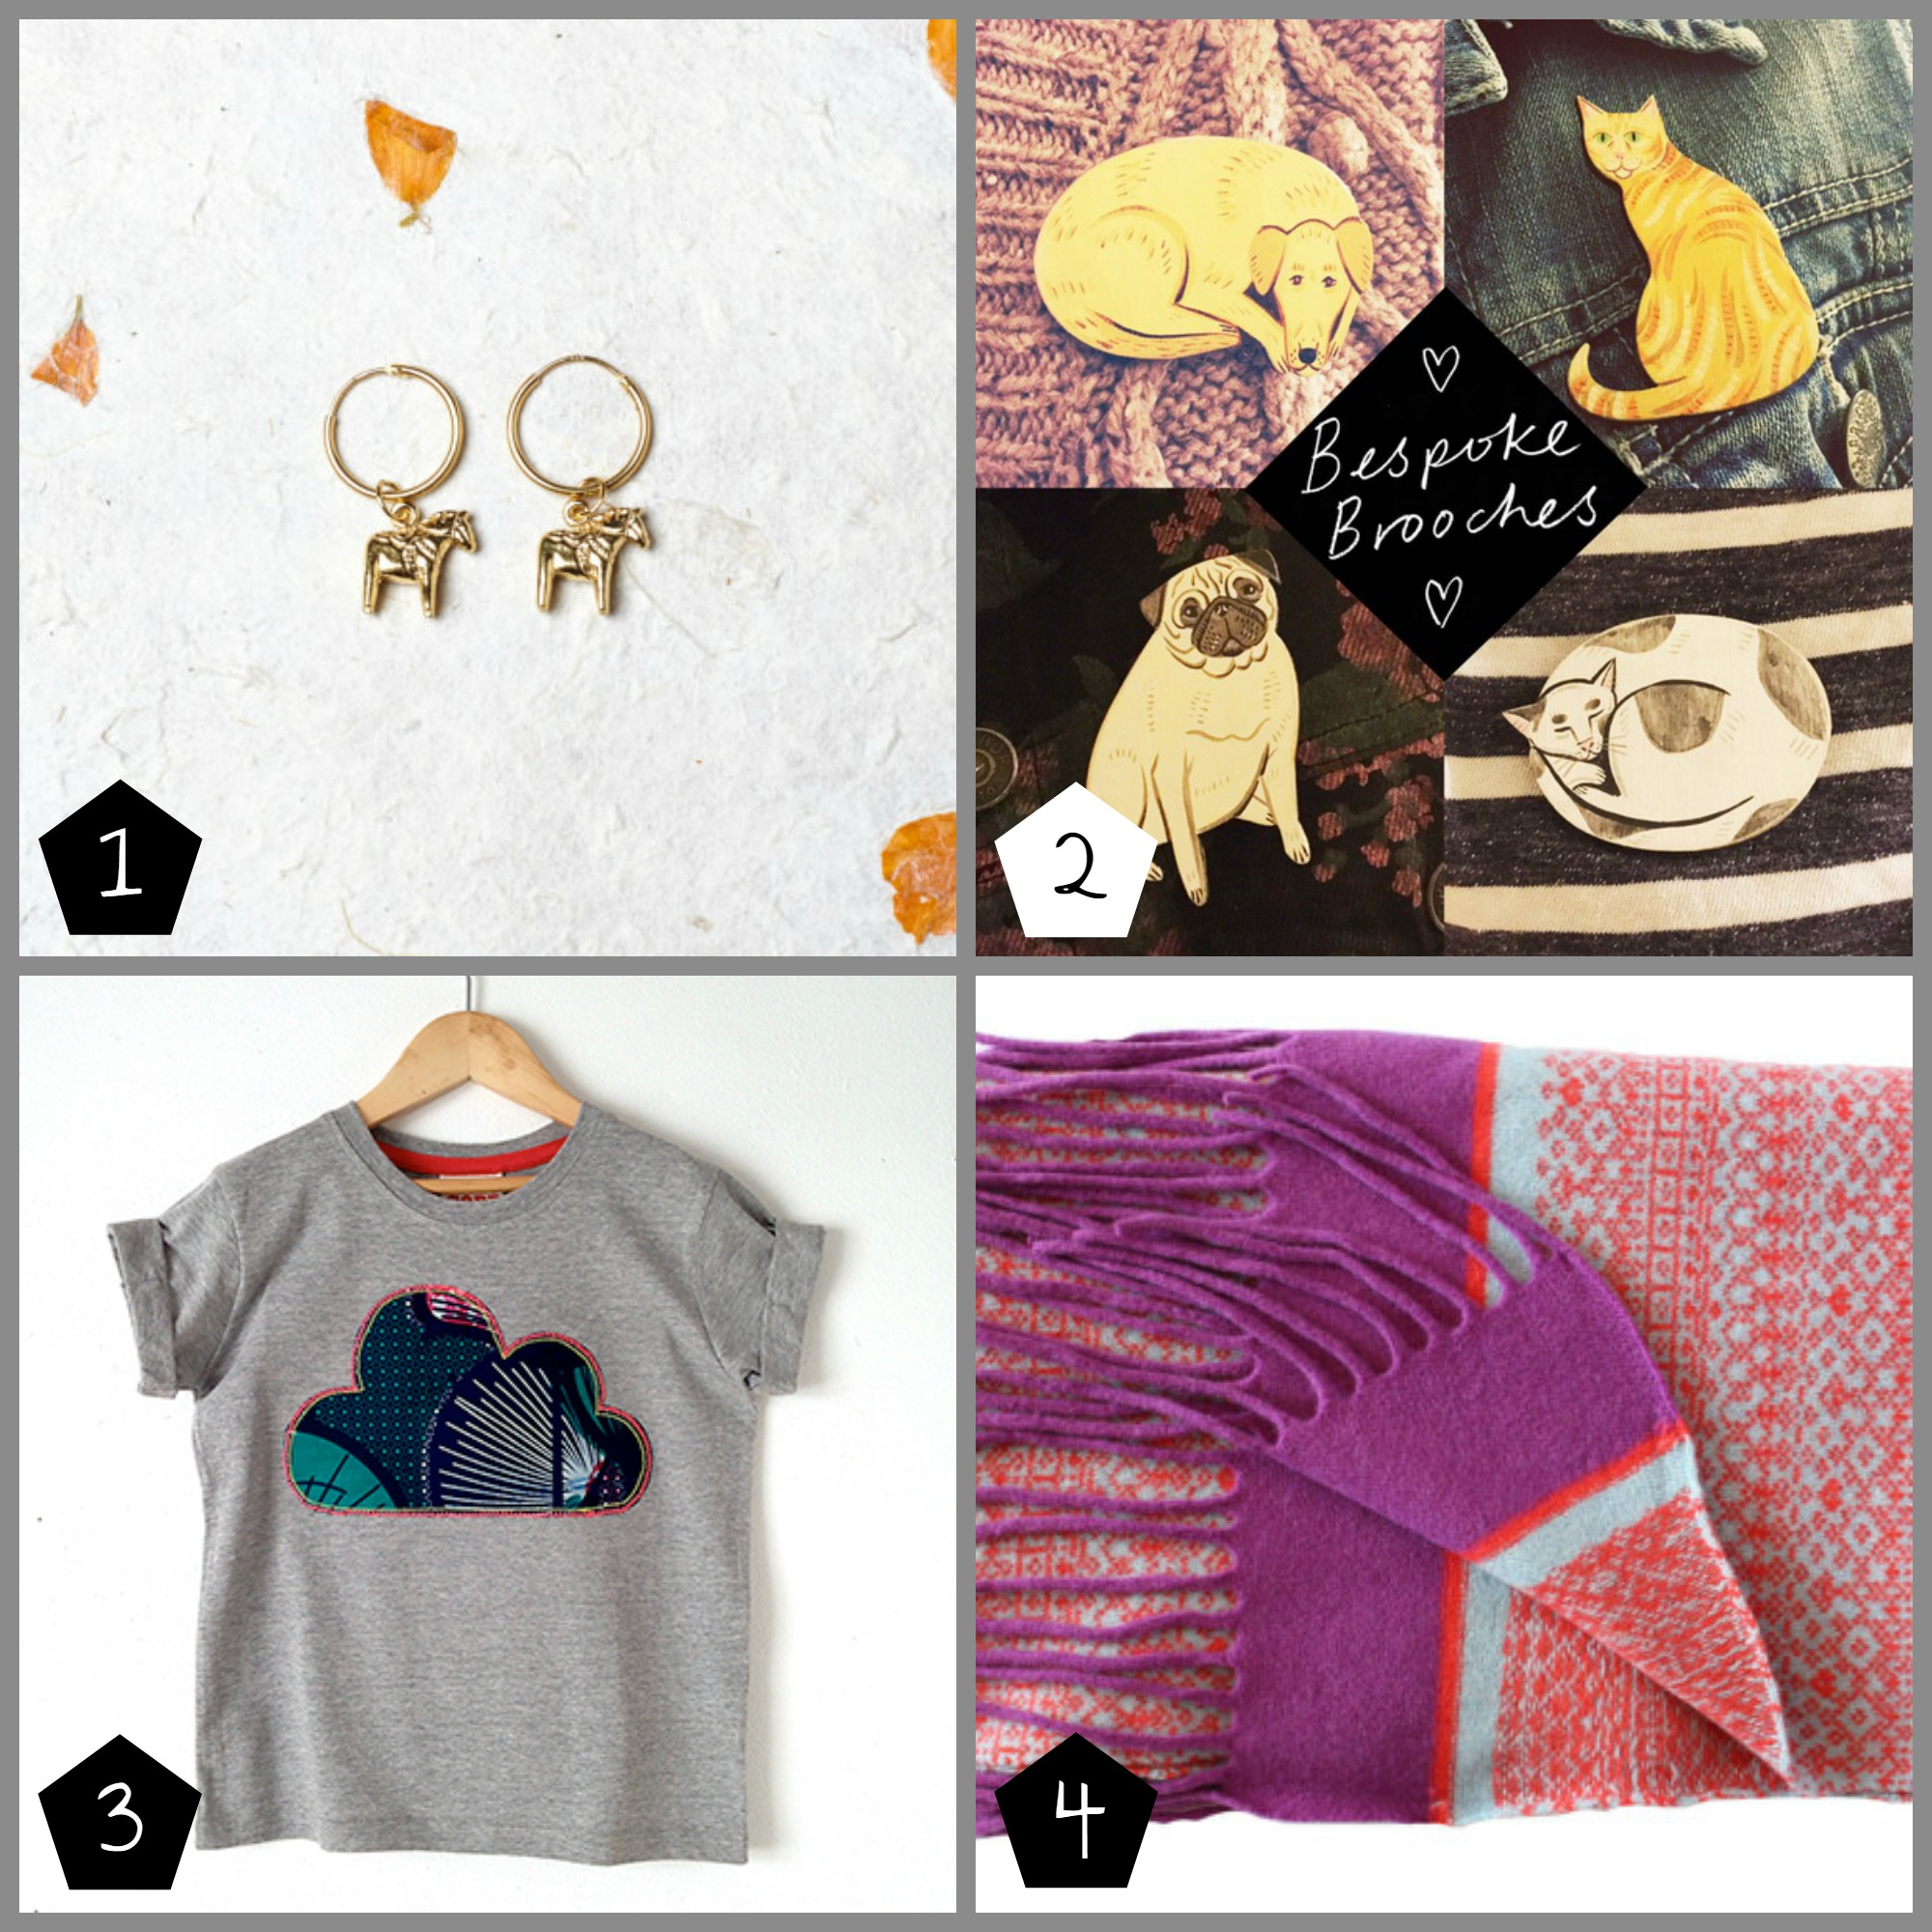 1.   Margot & Mila will be taking bespoke jewellery orders at the market (Museum of London Docklands - 08 Dec)    2.  Rosie Gainsborough is making a range of bespoke pet brooches, order before 15 Nov (Geffrye Museum - 17 Dec)  3. Cleo Cobb offers custom options for children's tees (Brixton - 06 Dec,Museum of London Docklands - 08 Dec)  4. Suzie Lee Knitwear can create bespoke knitted items (Museum of London Docklands - 08 Dec,Geffrye Museum - 17 Dec)